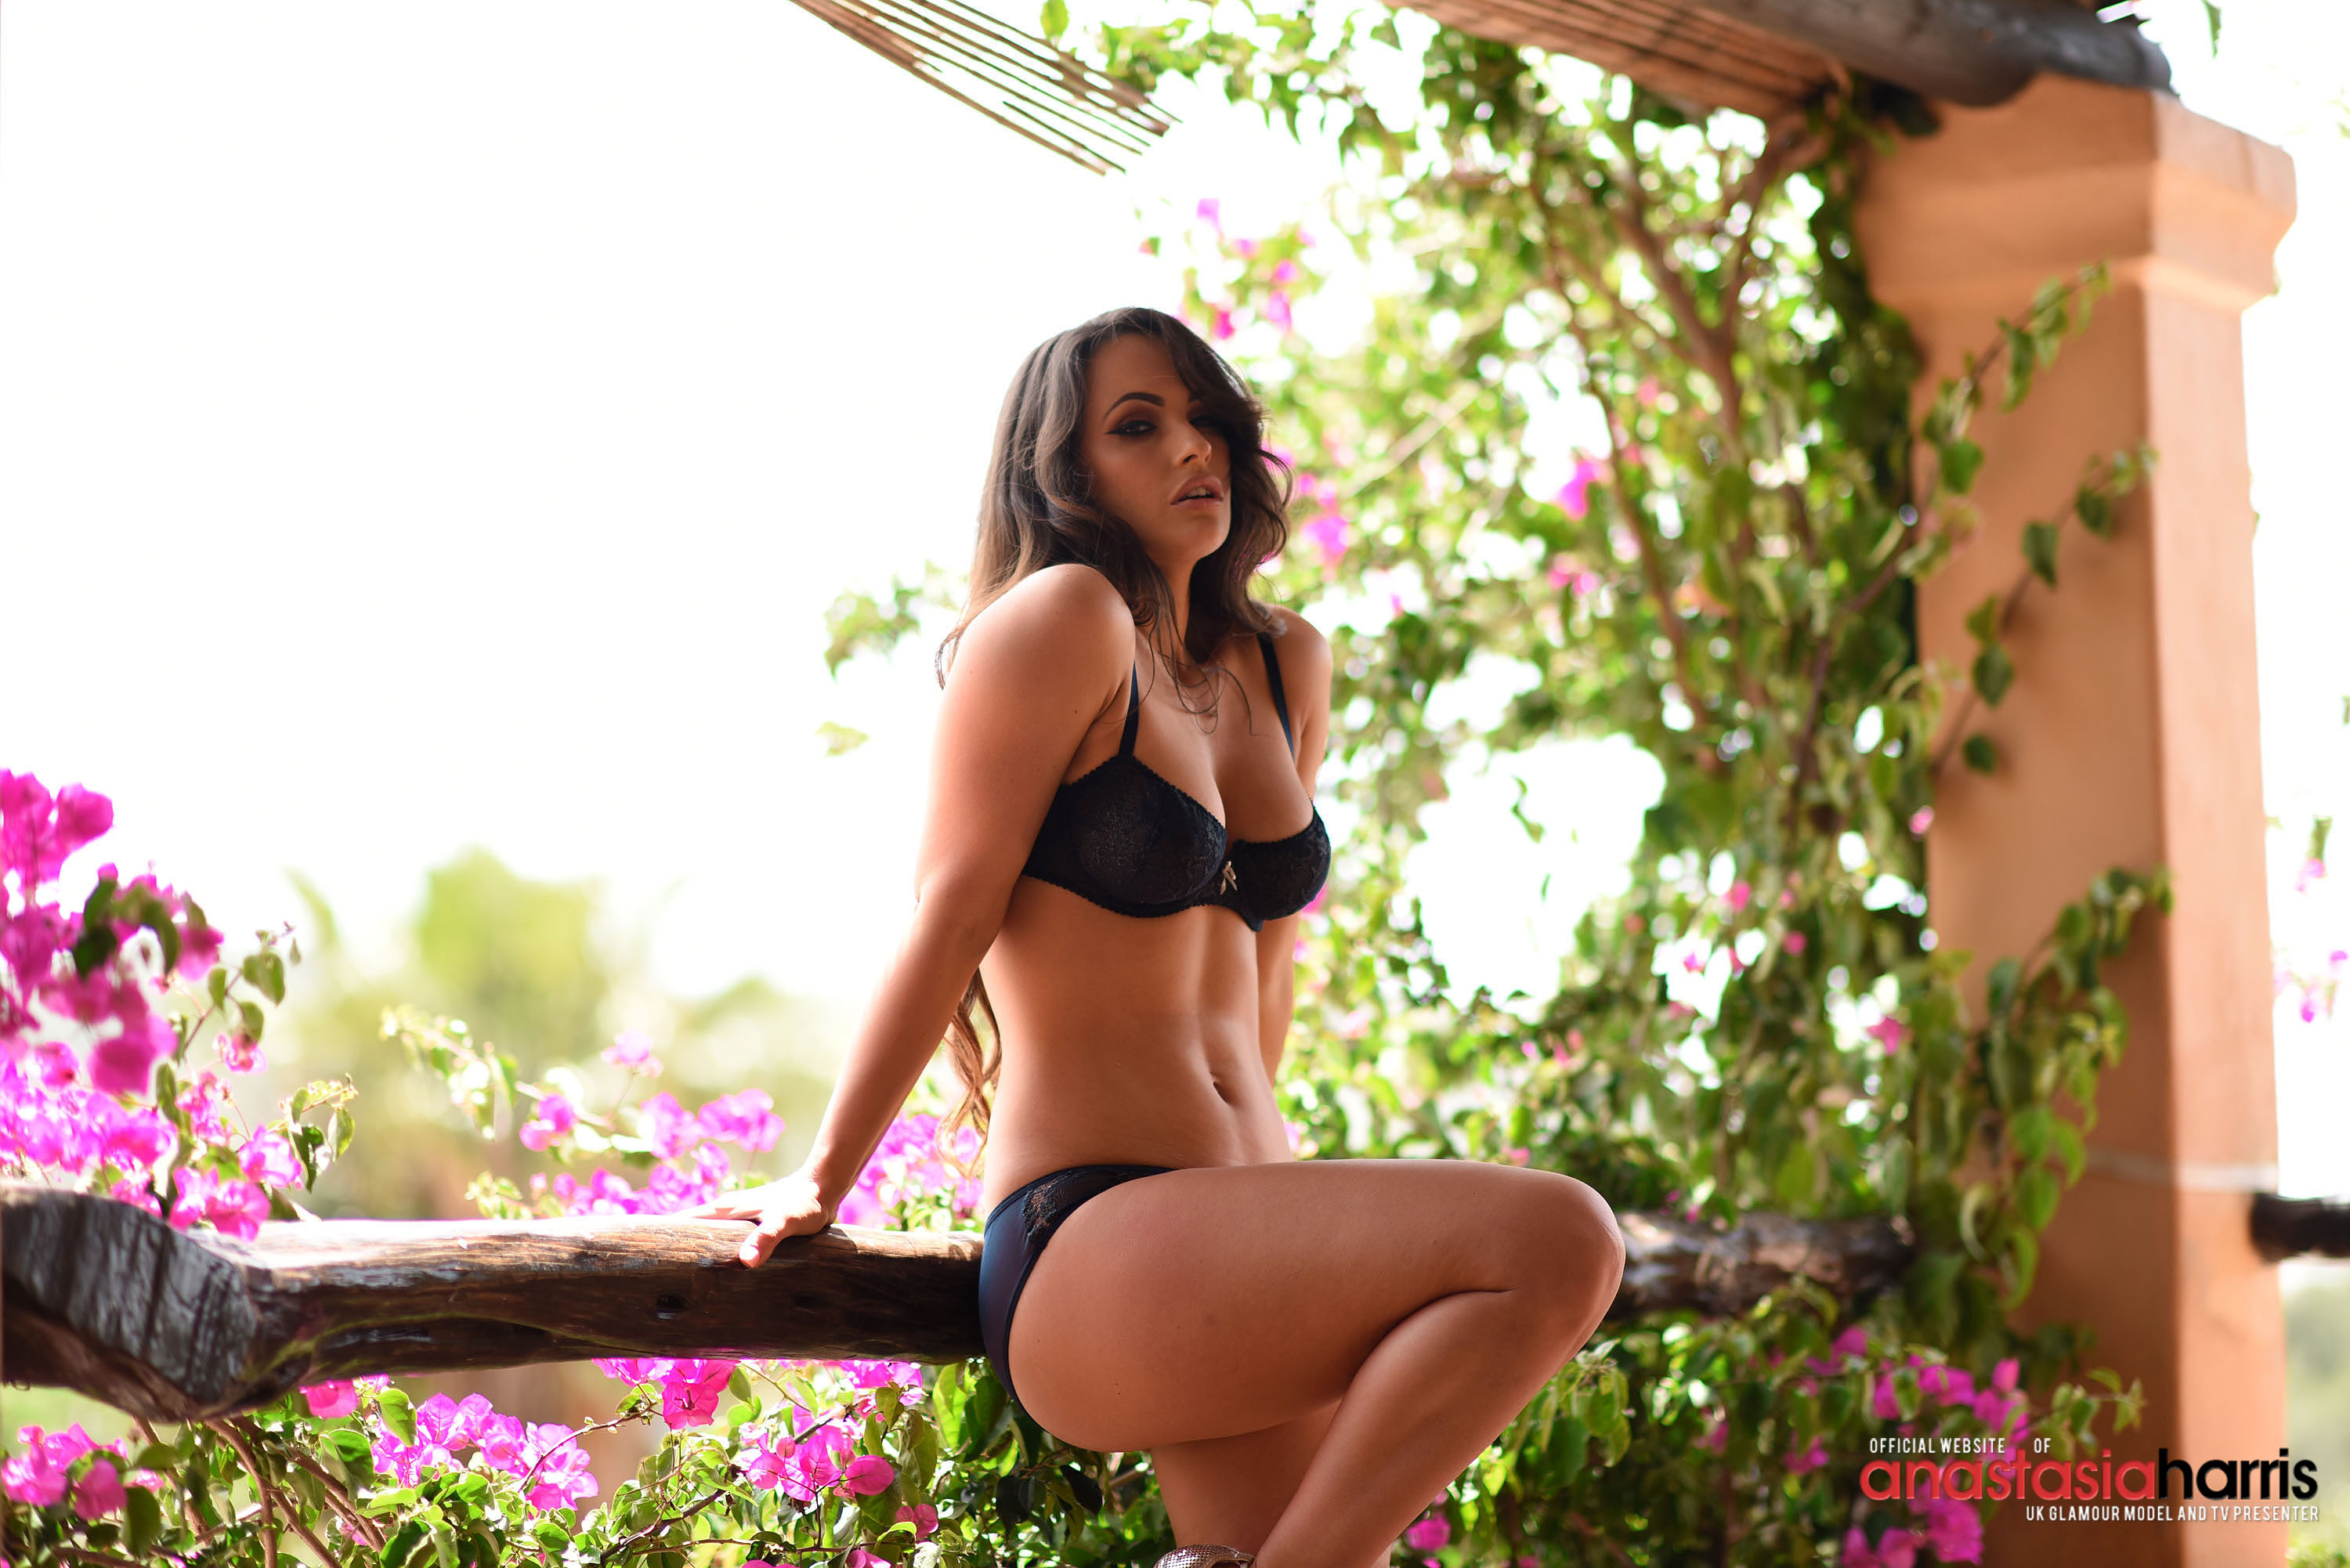 Anastasia posing in blue lingerie and heels outdoors